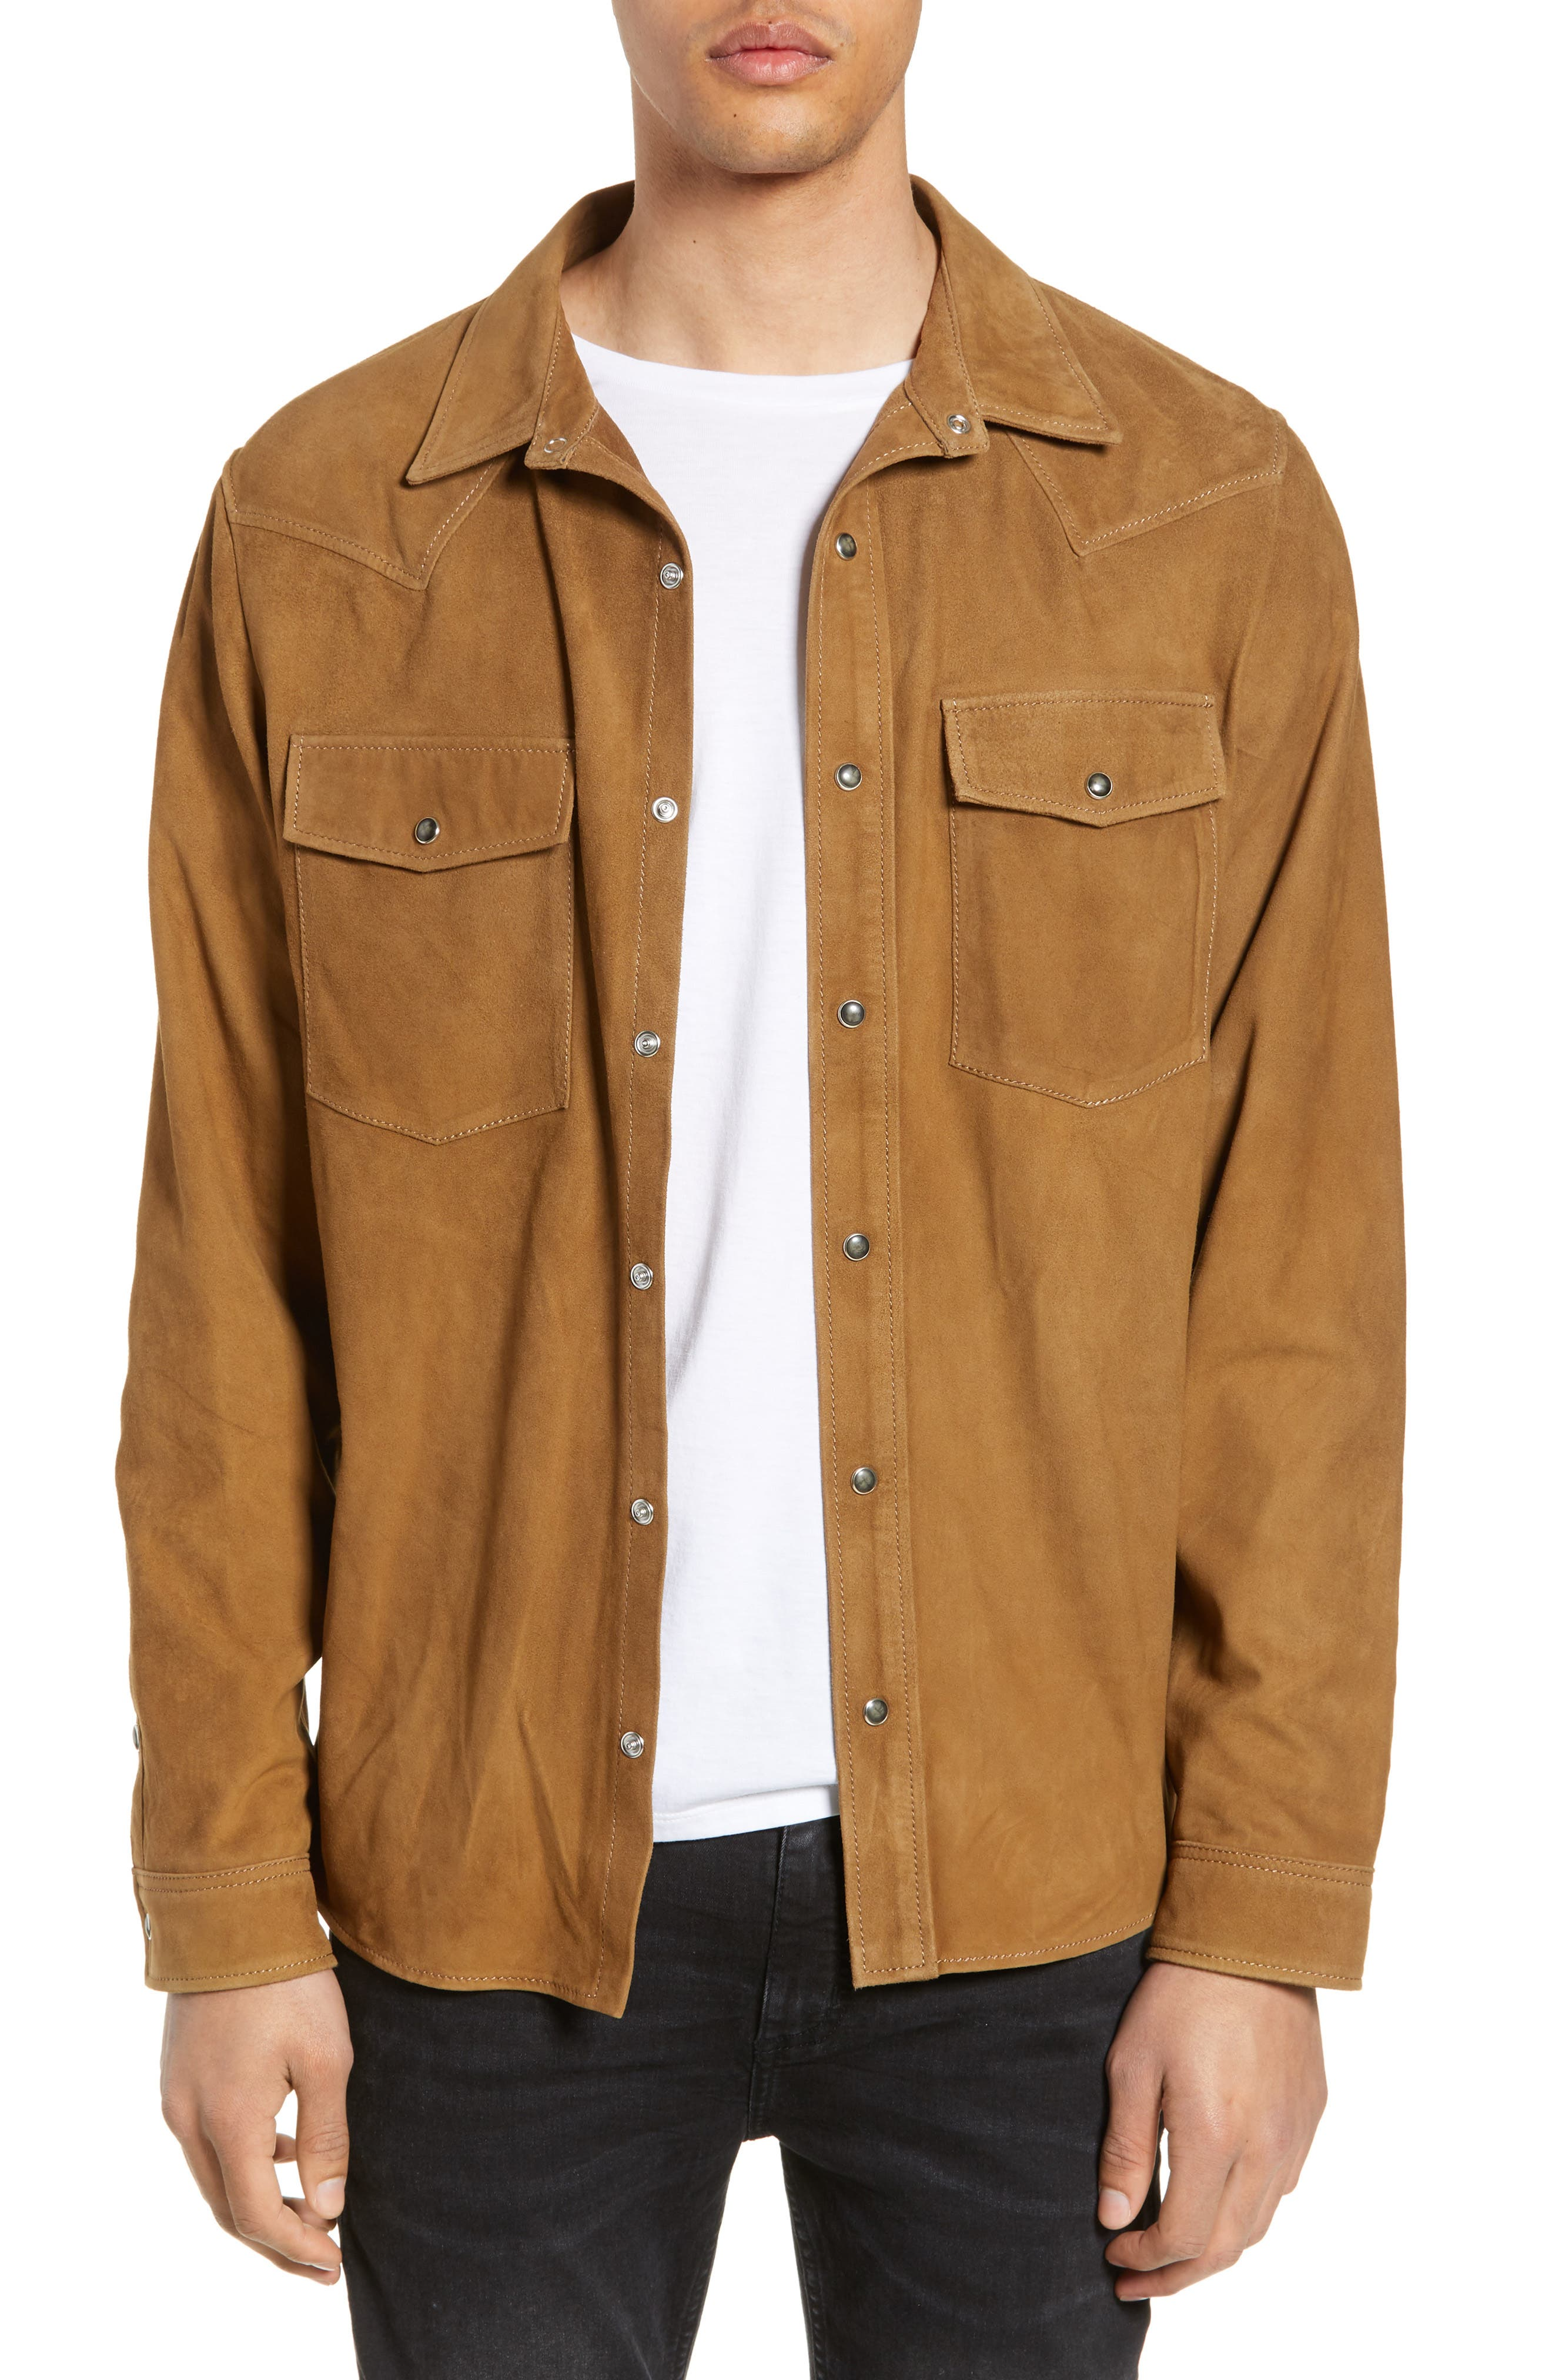 THE KOOPLES Suede Shirt, Main, color, CAMEL